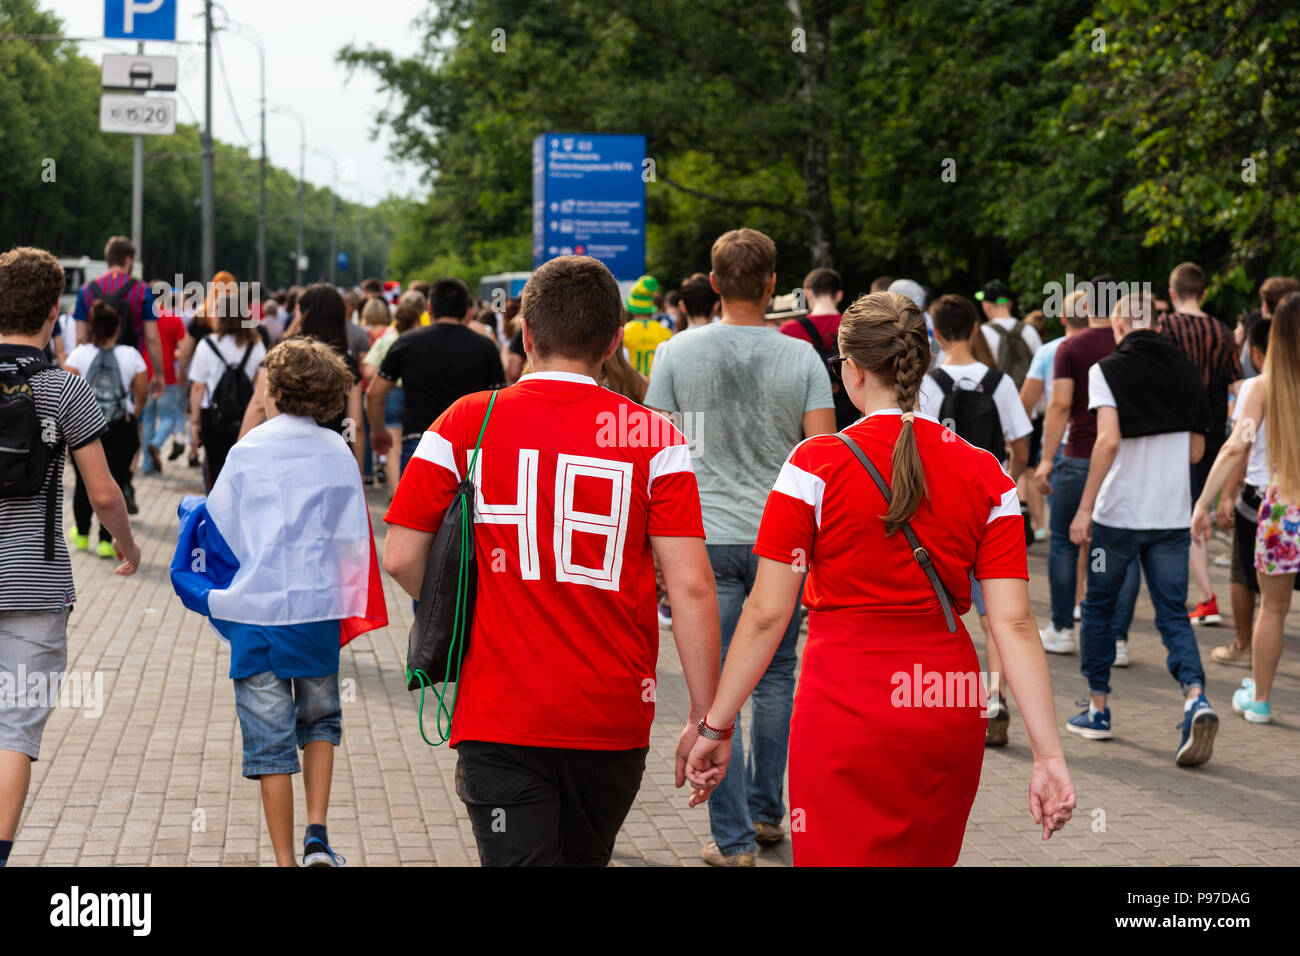 Moscow, Russia. 15th July, 2018. FIFA World Cup France-Croatia final. Fan festival area on Sparrow Hills by Moscow State University. Area's capacity of 25000 people was exceeded manifold. There is barely room to move. Thunderstorm weather. People go to the fan area to watch the game on large TV screens for free and to be social. Credit: Alex's Pictures/Alamy Live News Stock Photo